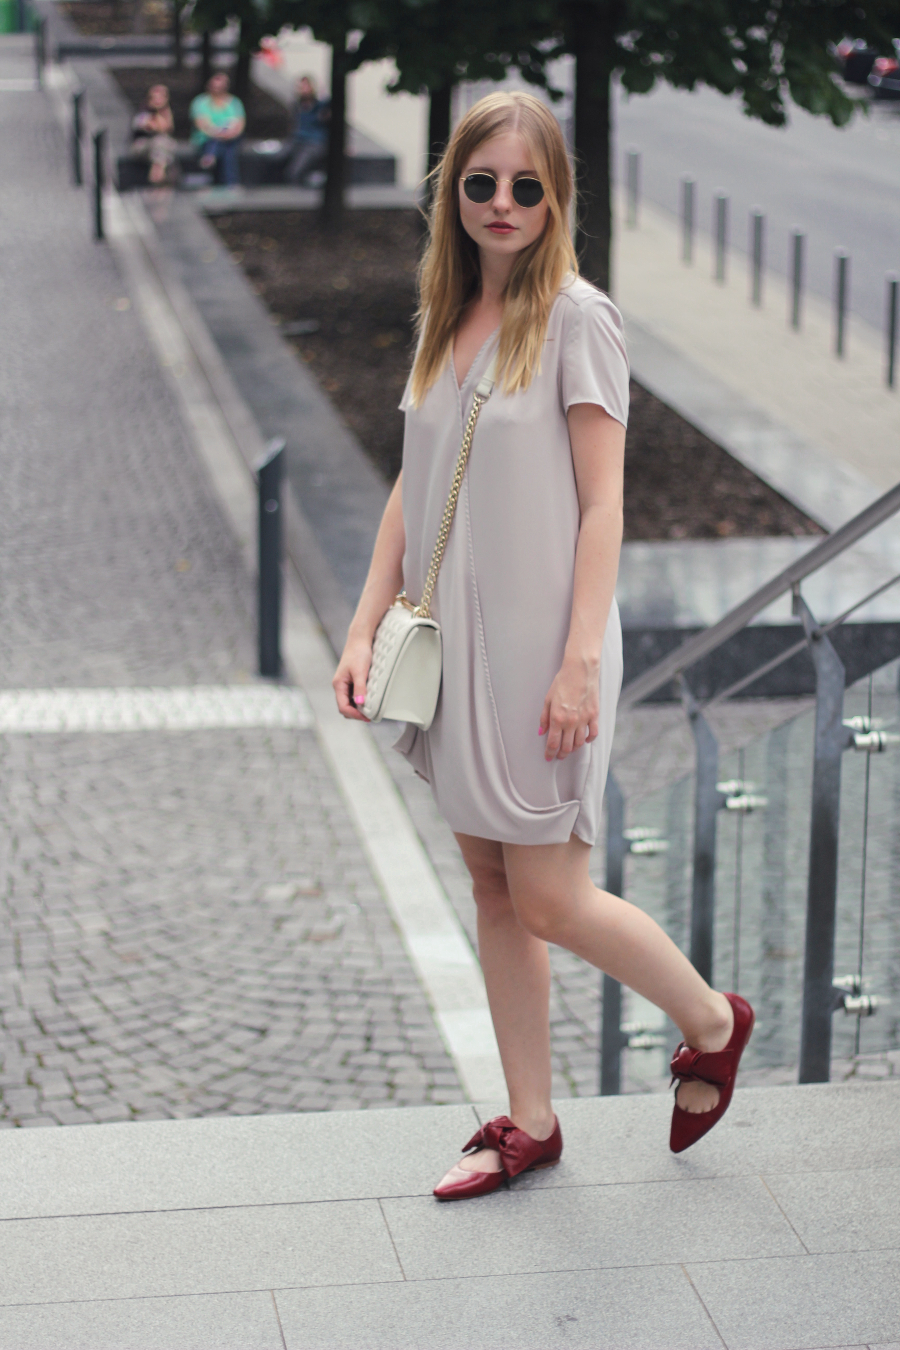 outfit german fashionblog sarah wide dress wrap chain bag red bow ballerina shoes